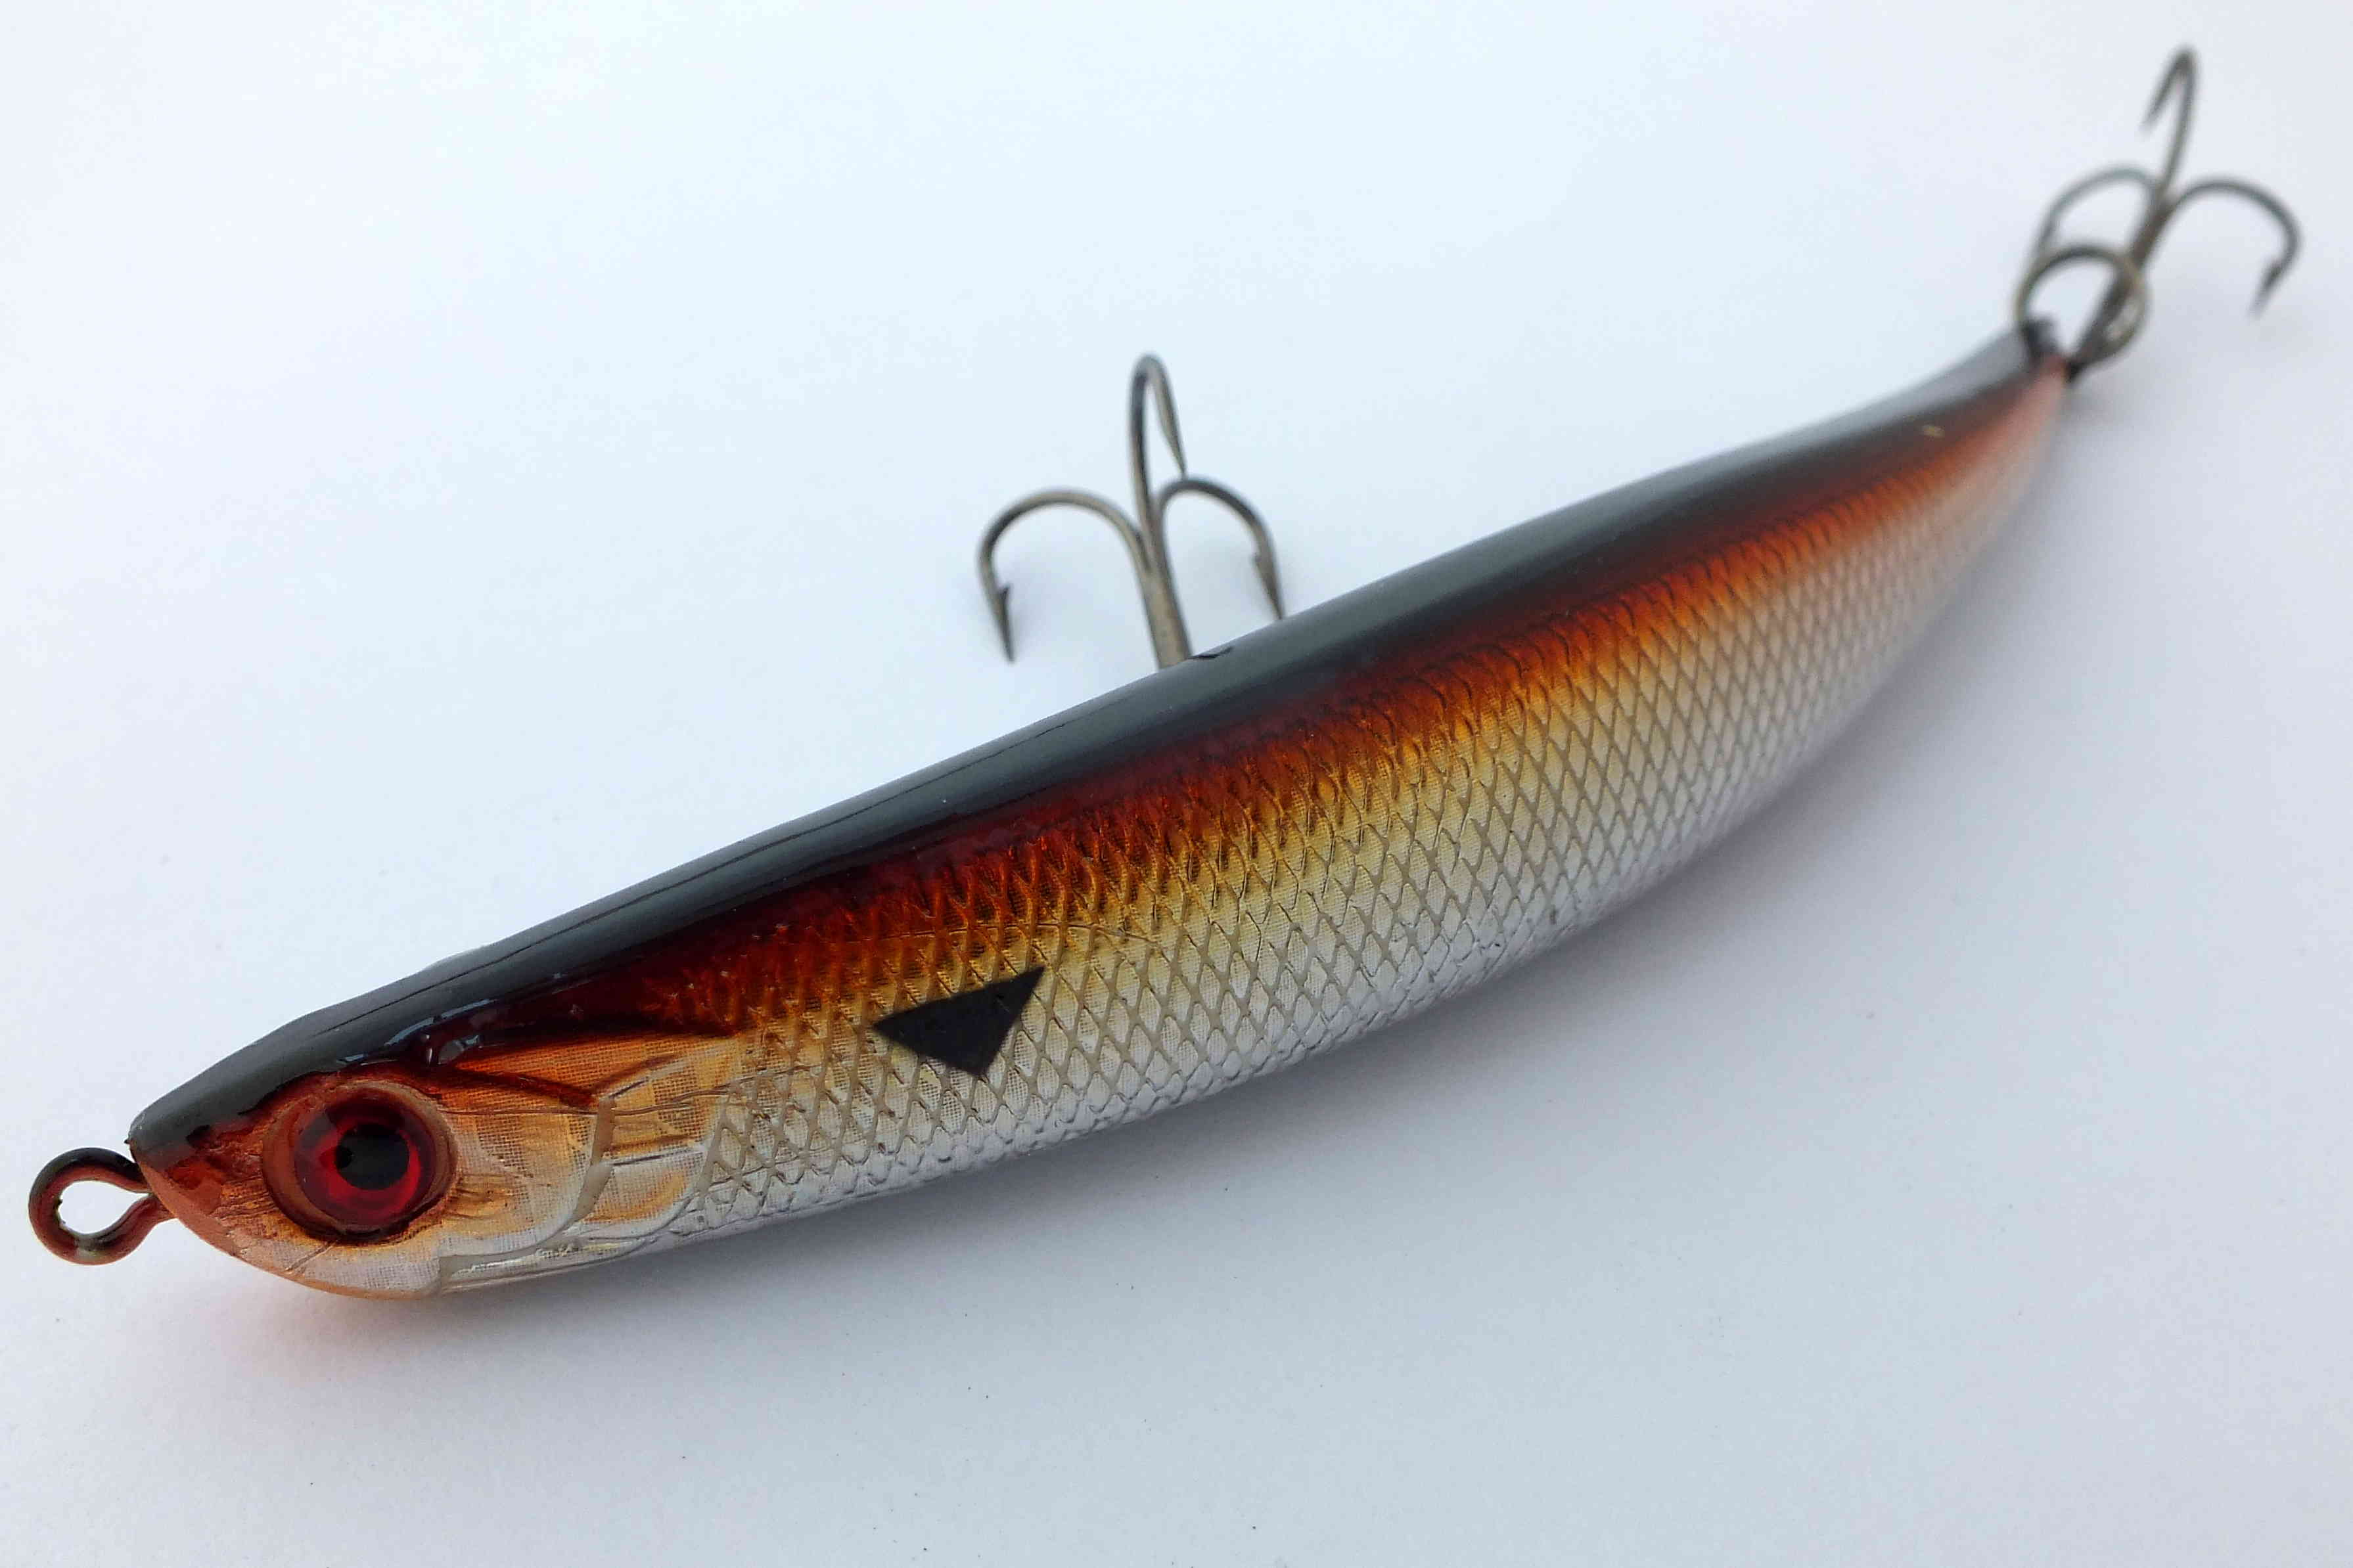 bent-minnow-105mm-x-5-in-pack-h-30.jpg